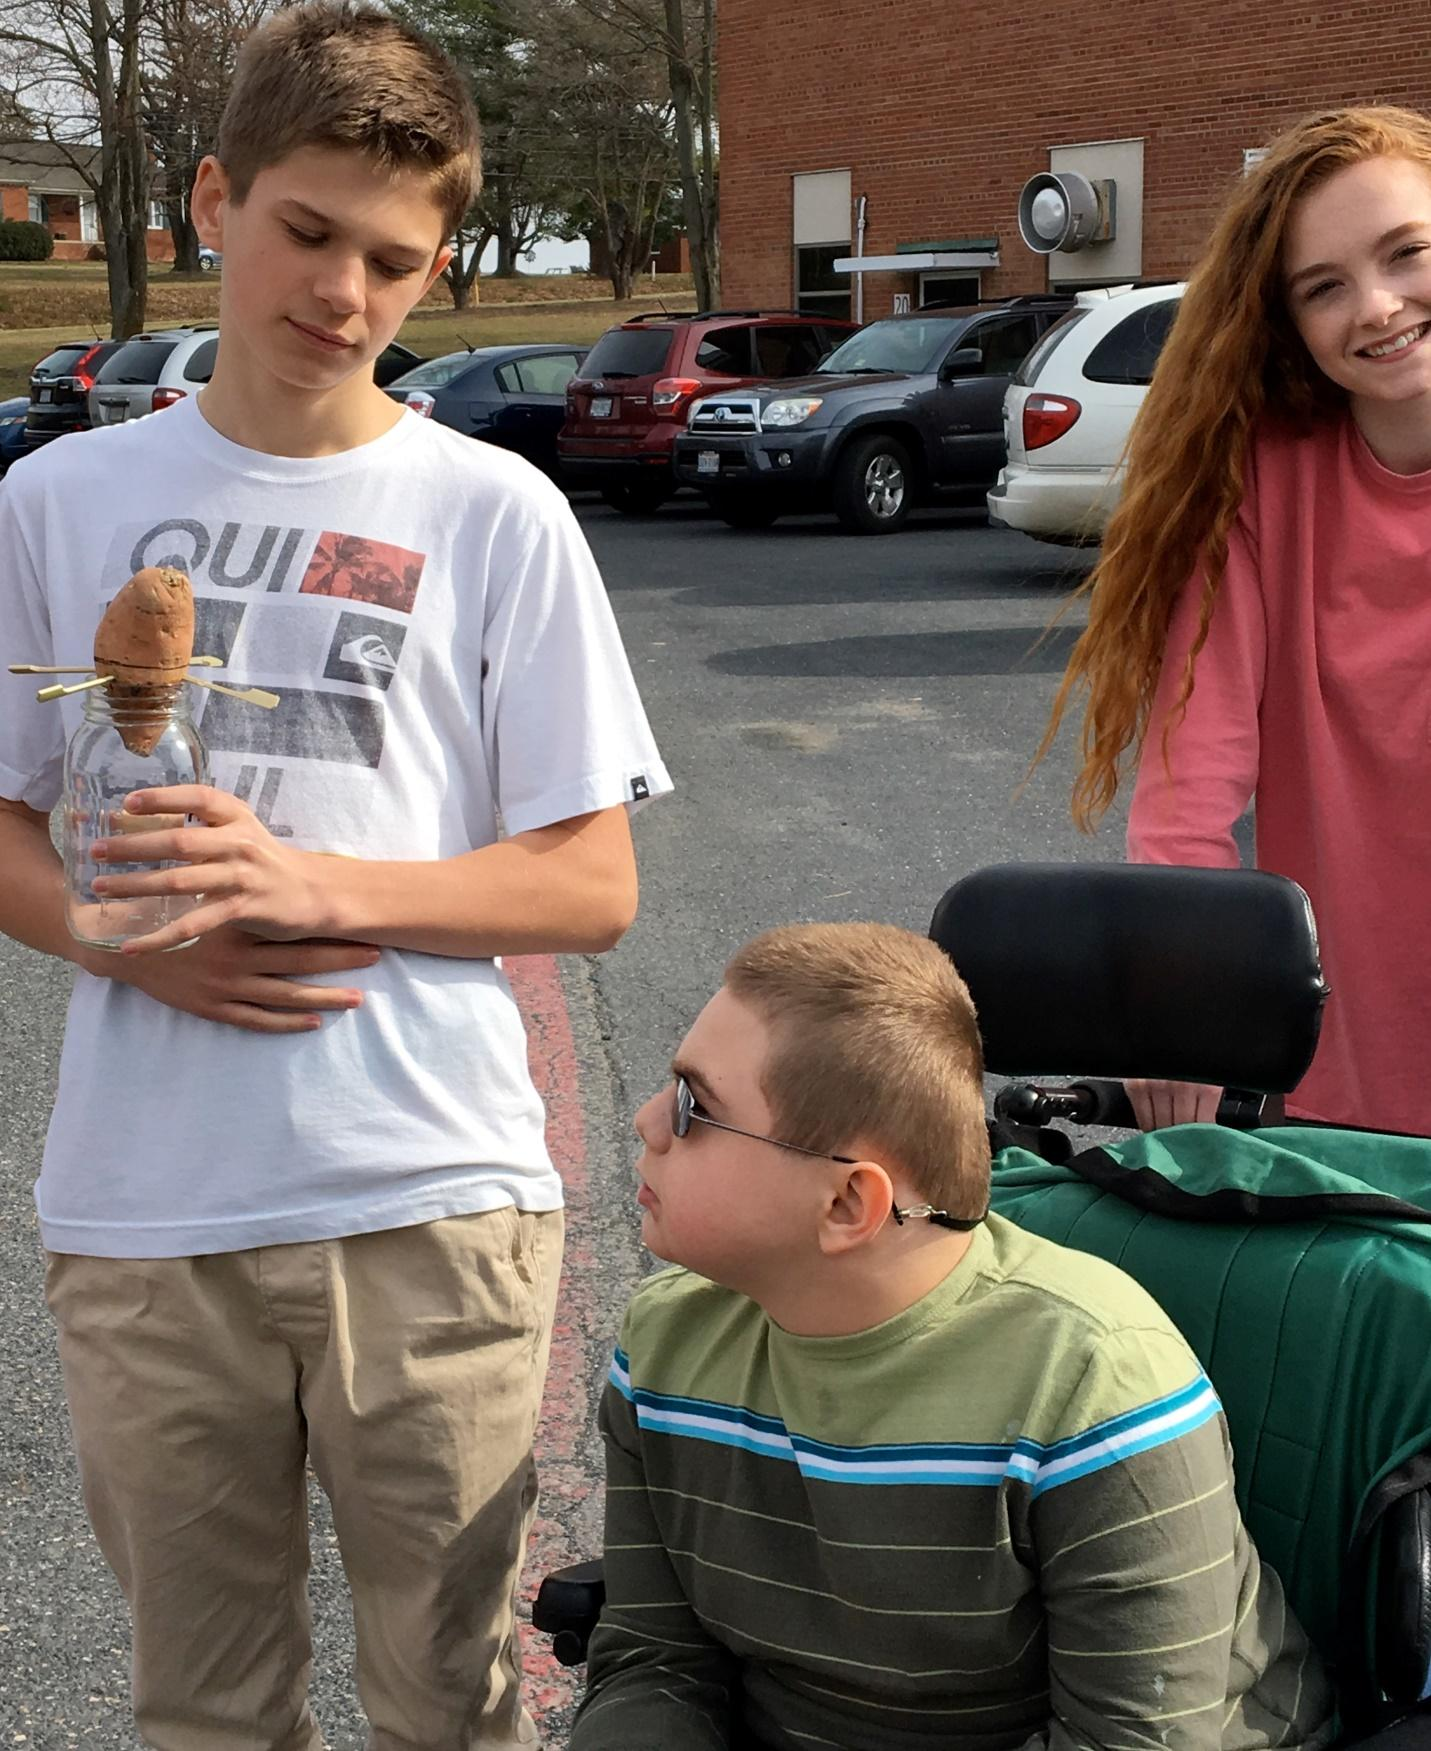 Three students in a parking lot holding a potato experiment.